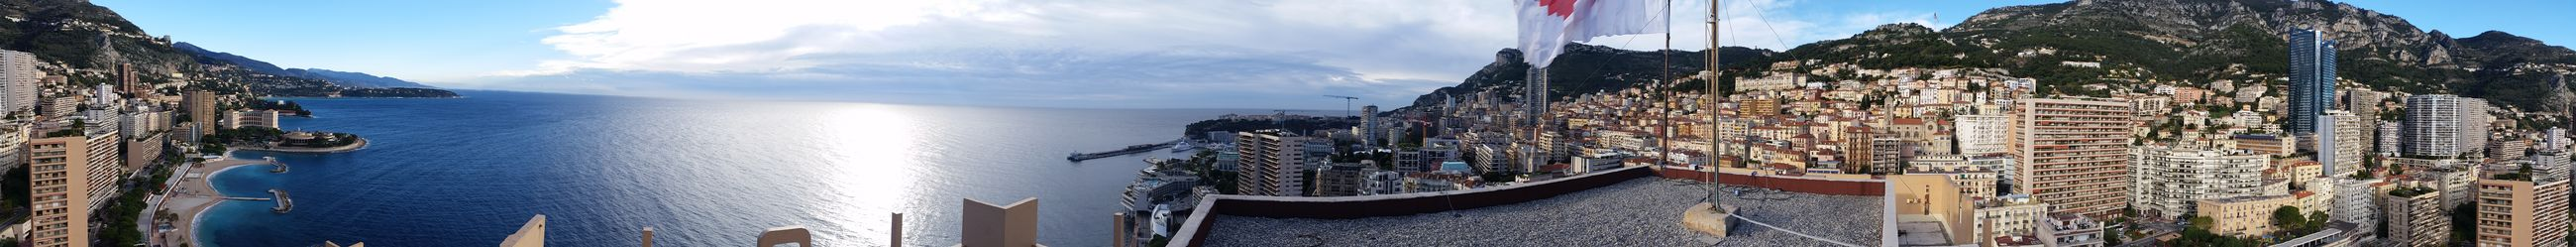 Monaco 360° degrés Montecarlo Monaco Diaporama 360 Panorama 360° Taking Photos Getting Inspired Landscape Cityscape French Riviera Cloud And Sky Mycity Cityscapes Streetphotography On Top Of The World Top Of Building Building Monaco City View